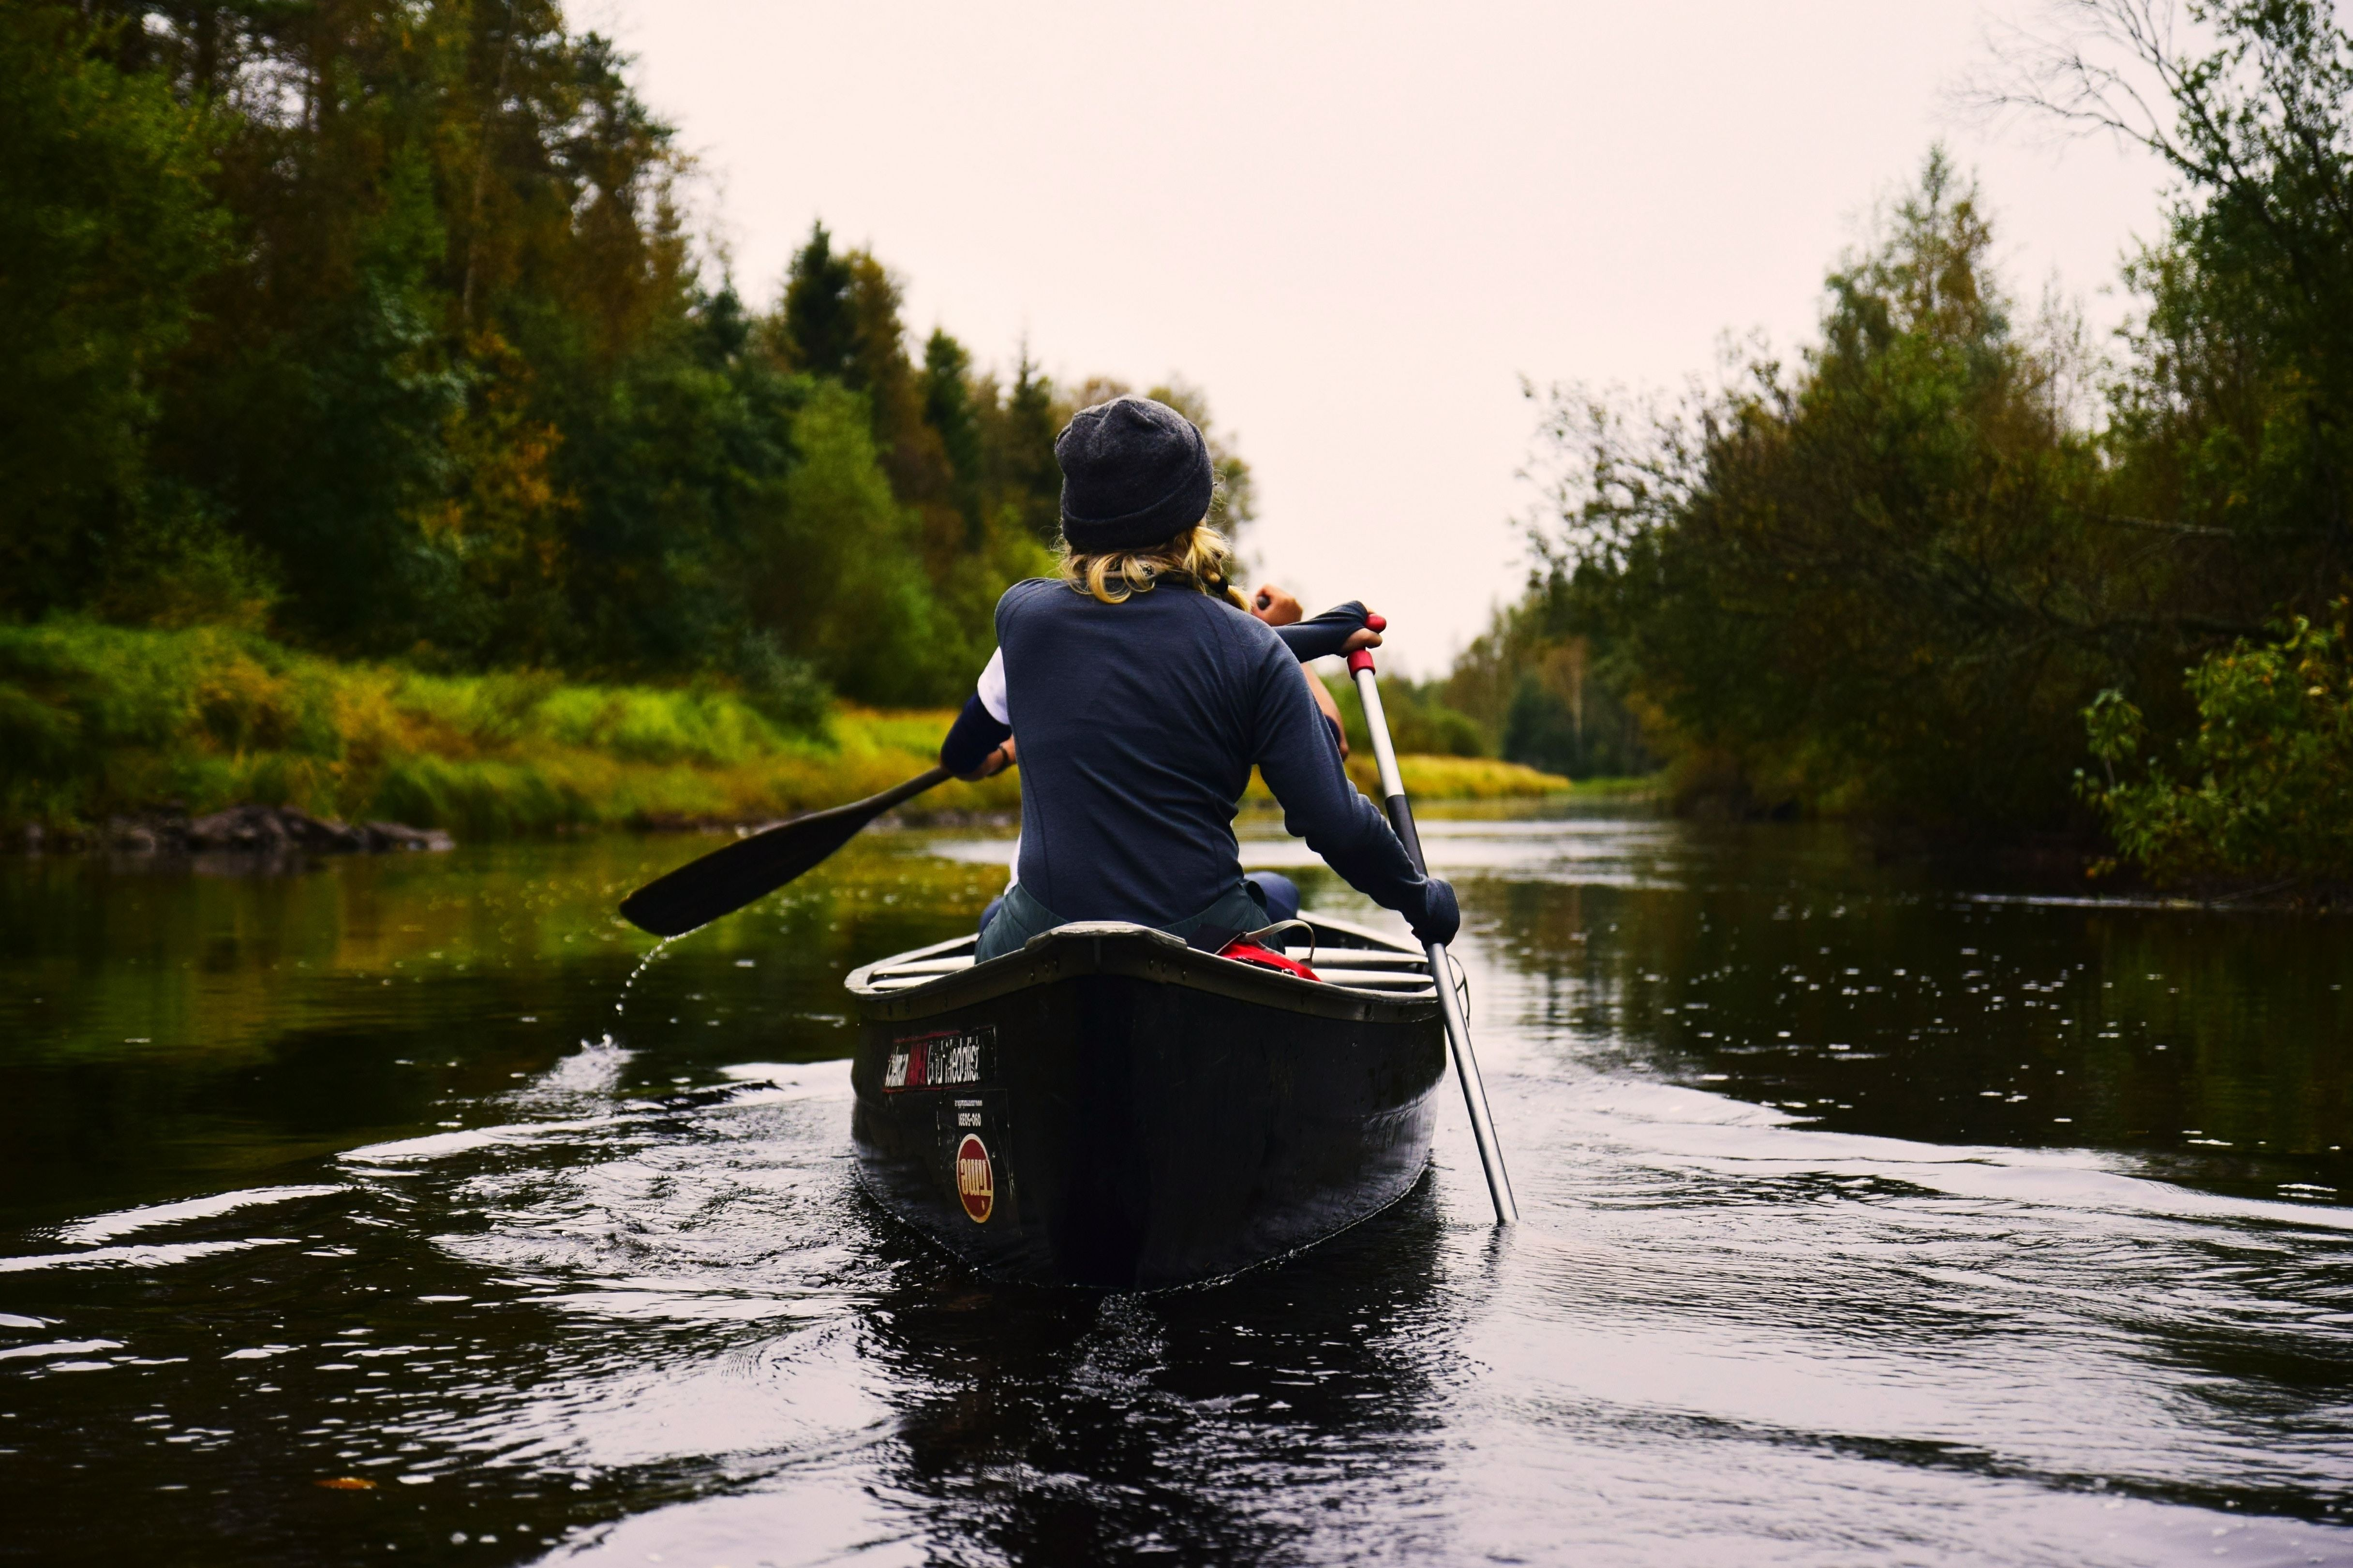 Canoeing/kayaking in the sea - Holmsund